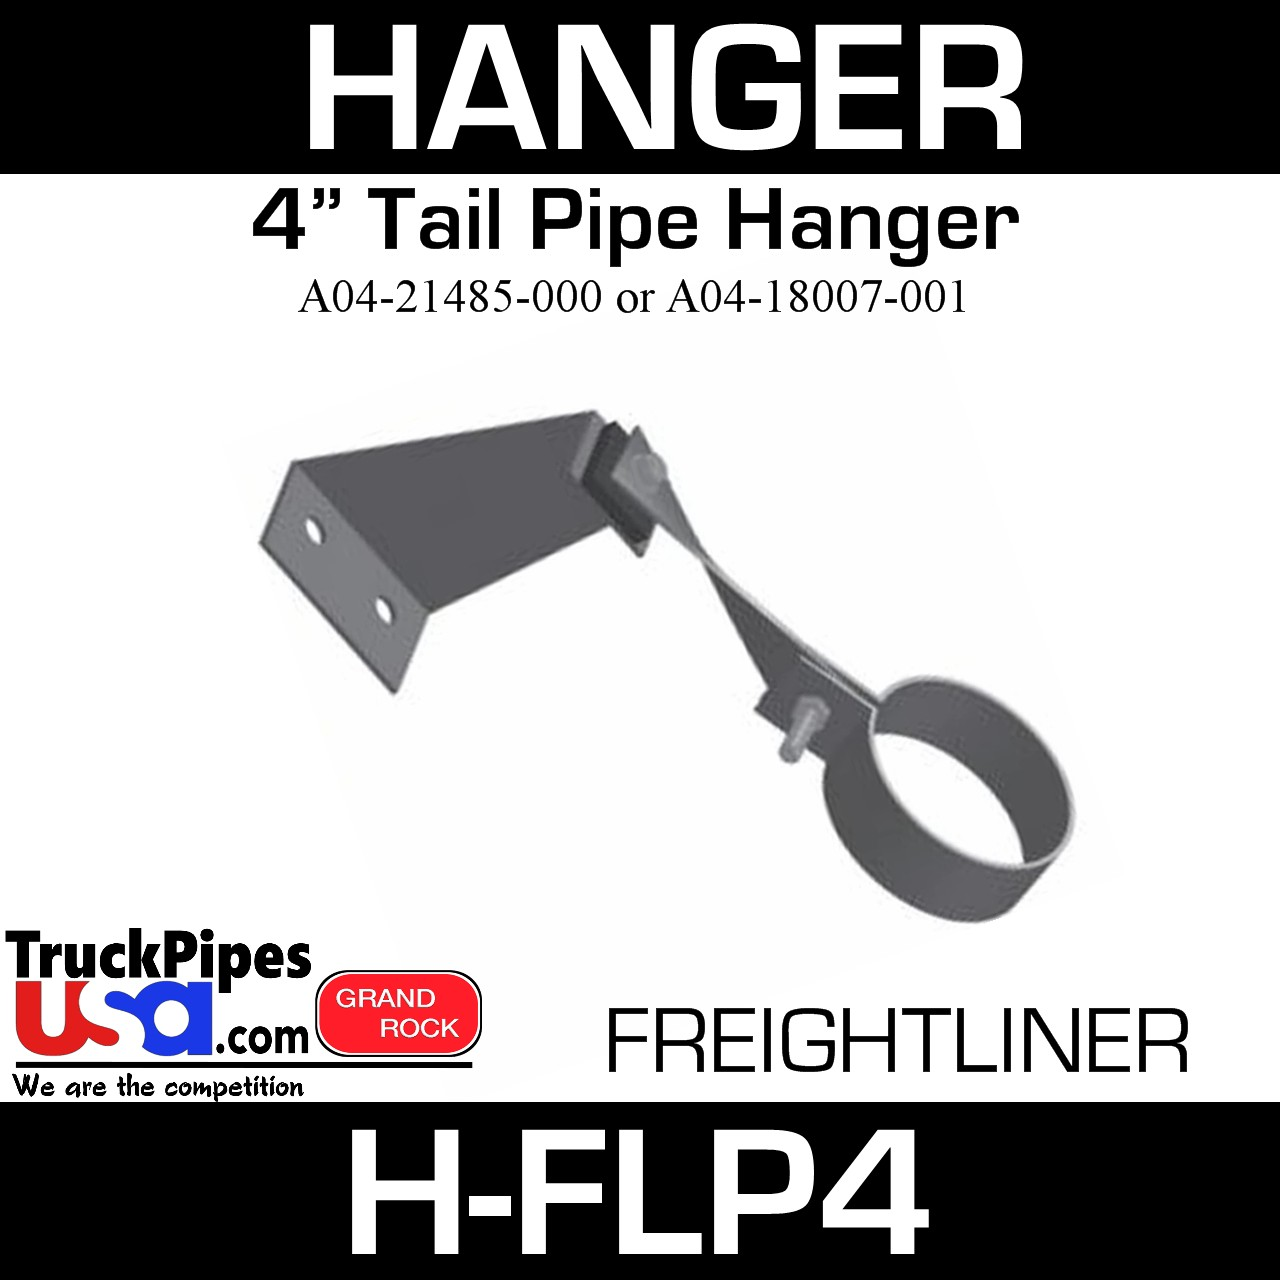 "4"" Tail Pipe Hanger A04-21485-000 or A04-18007-001 Freightliner H-FLP4"